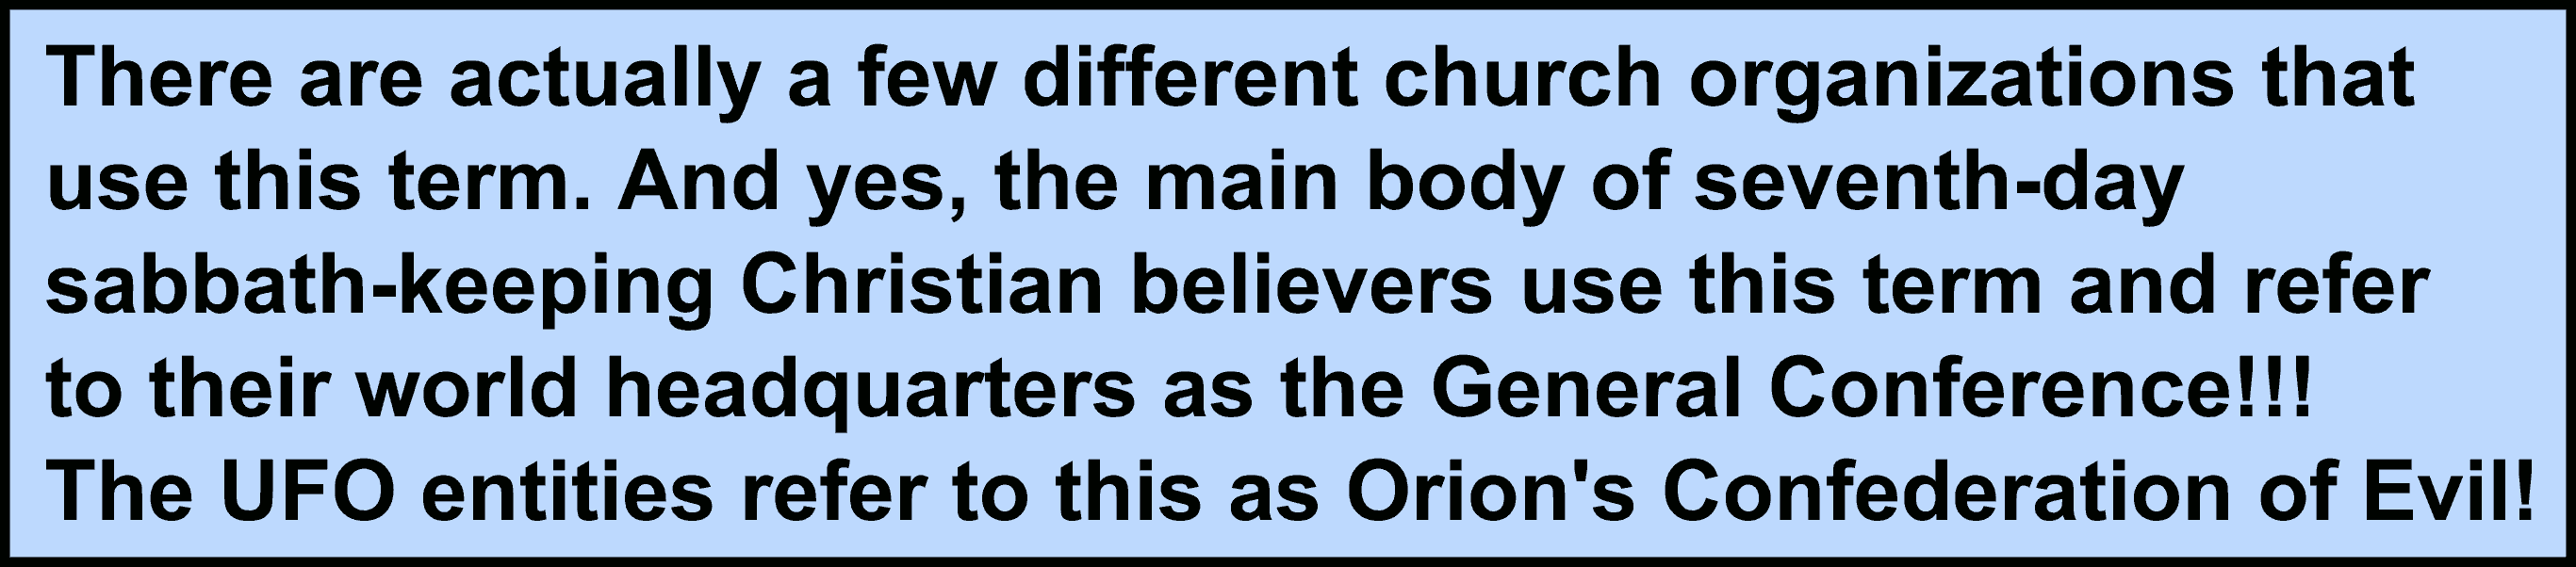 Image:There are actually a few different church organizations that use this term. And yes, the main body of seventh-day sabbath-keeping Christian believers use this term and refer to their world headquarters as the General Conference!!! The UFO entities refer to this as Orion's Confederation of Evil!